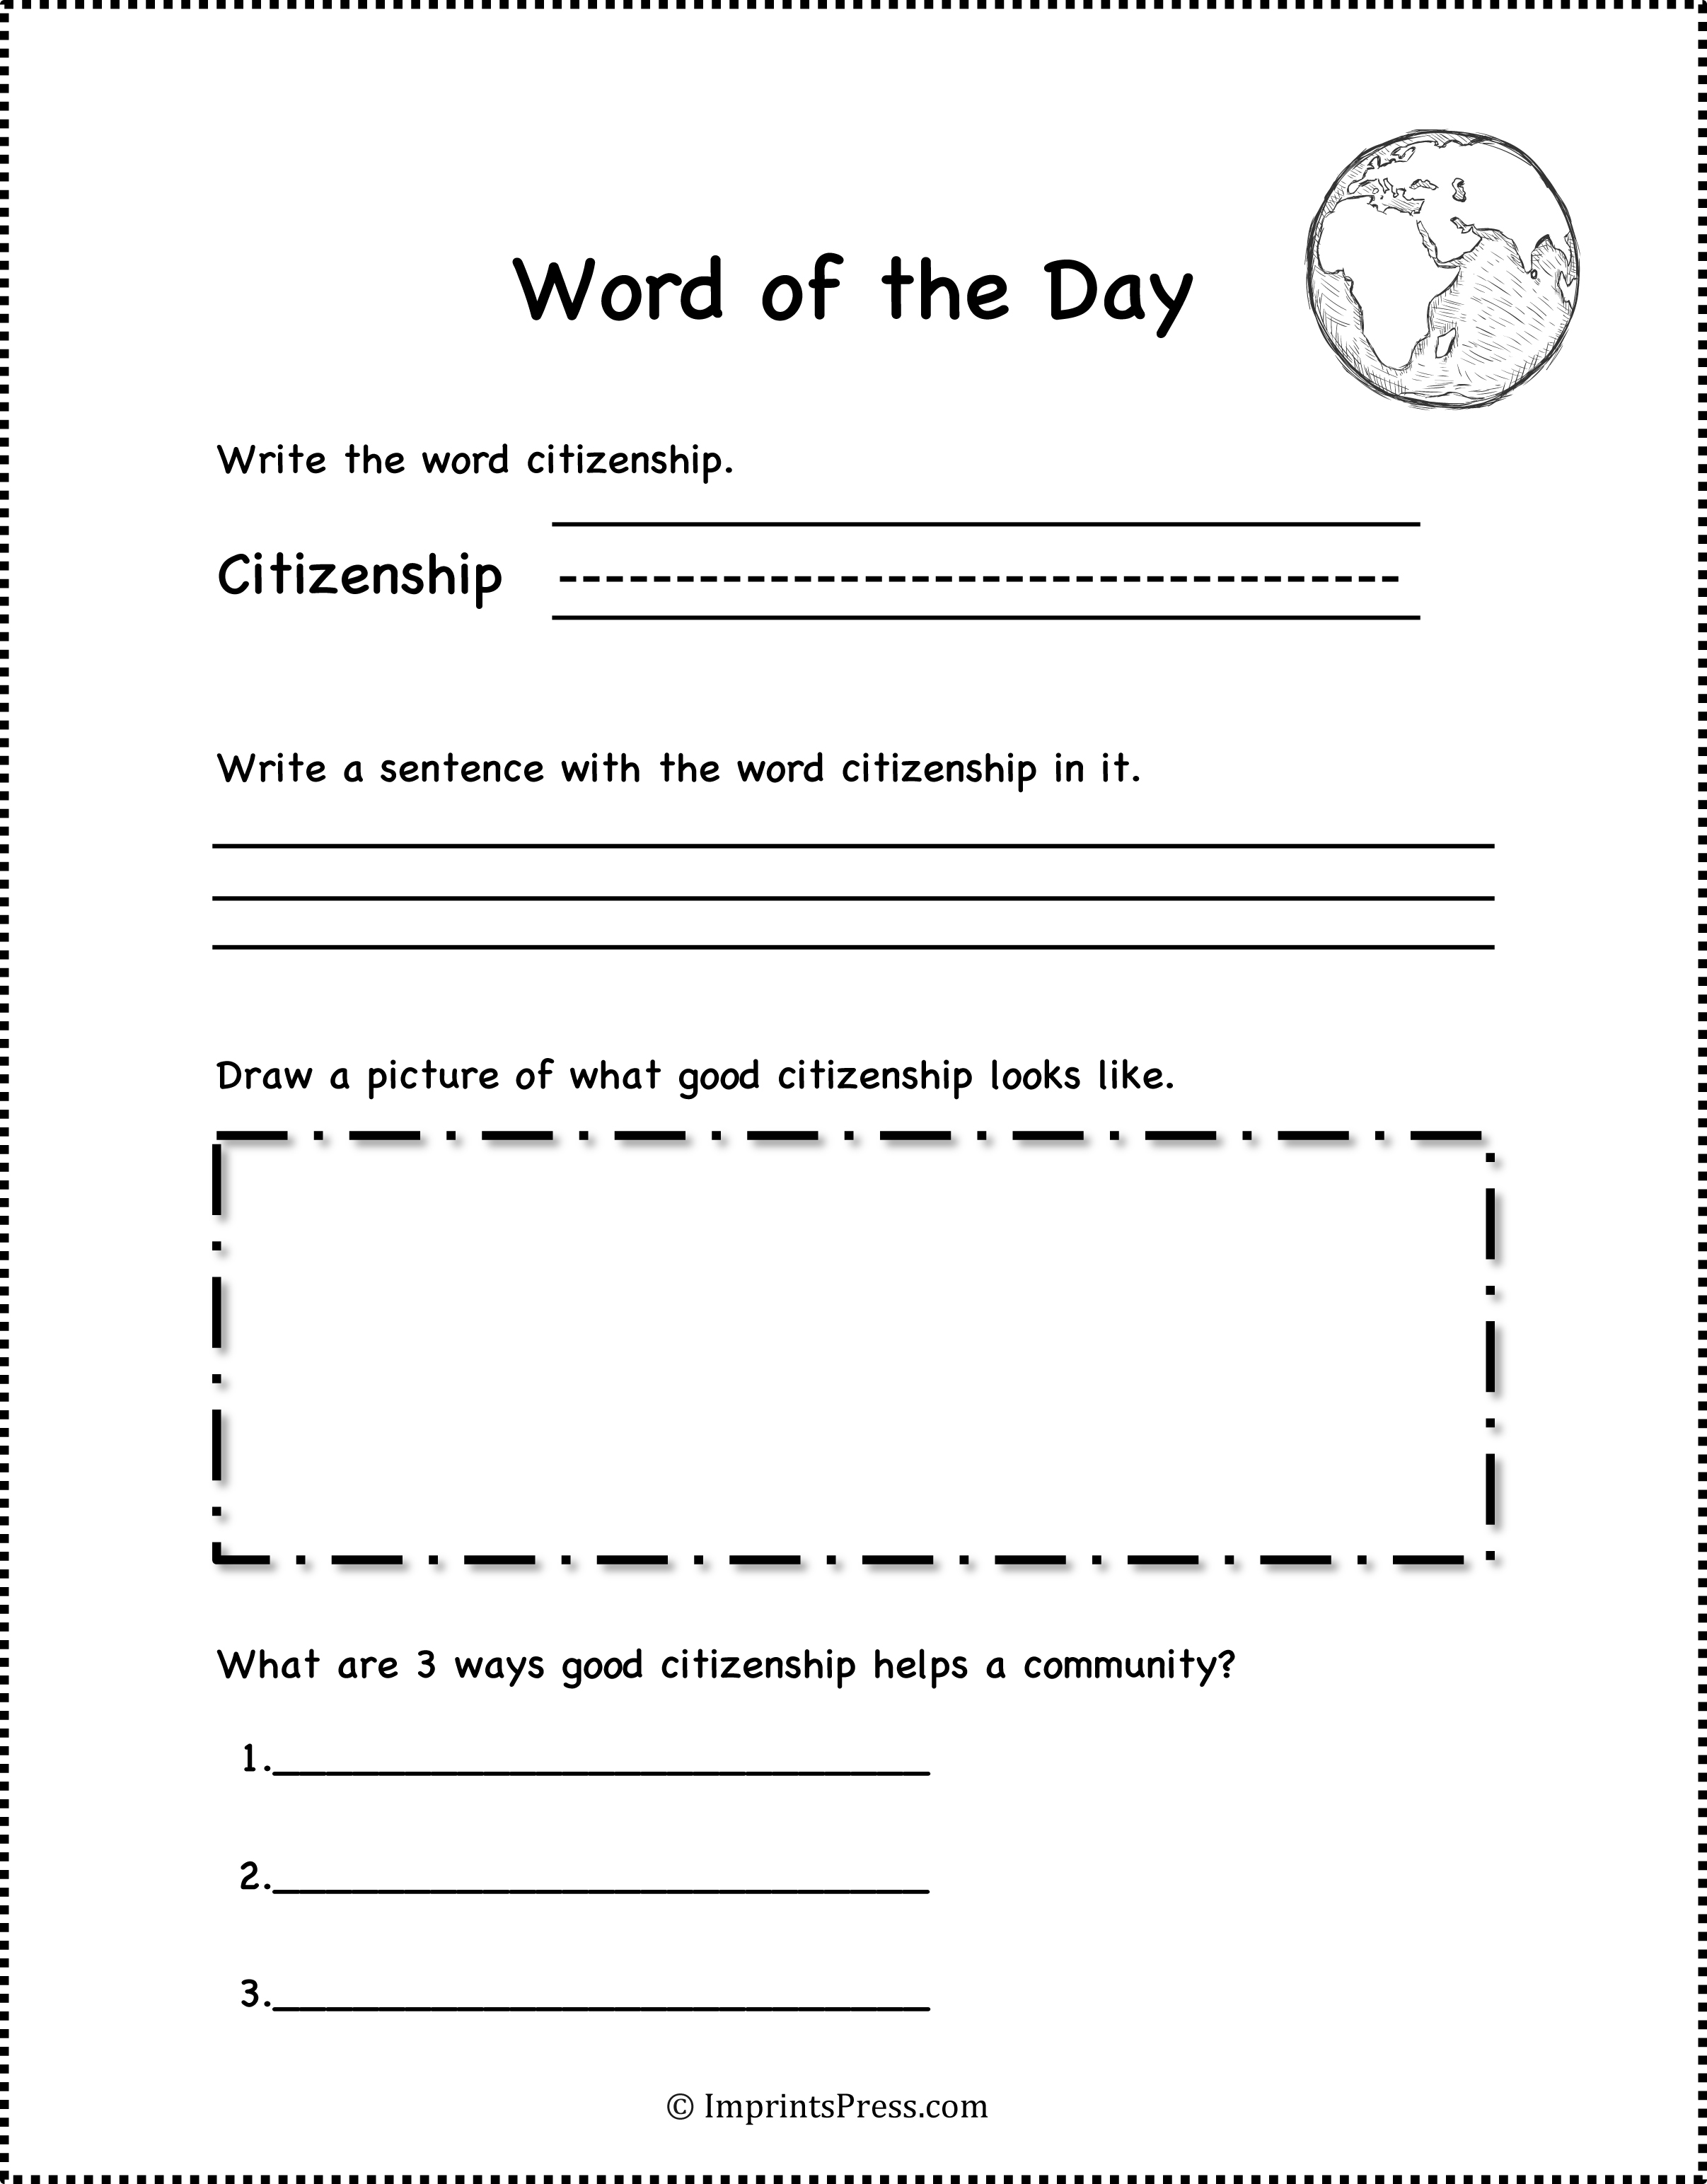 Worksheets Citizenship In The Community Worksheet common core worksheets supporting 21st century skills for global citizens imprints press